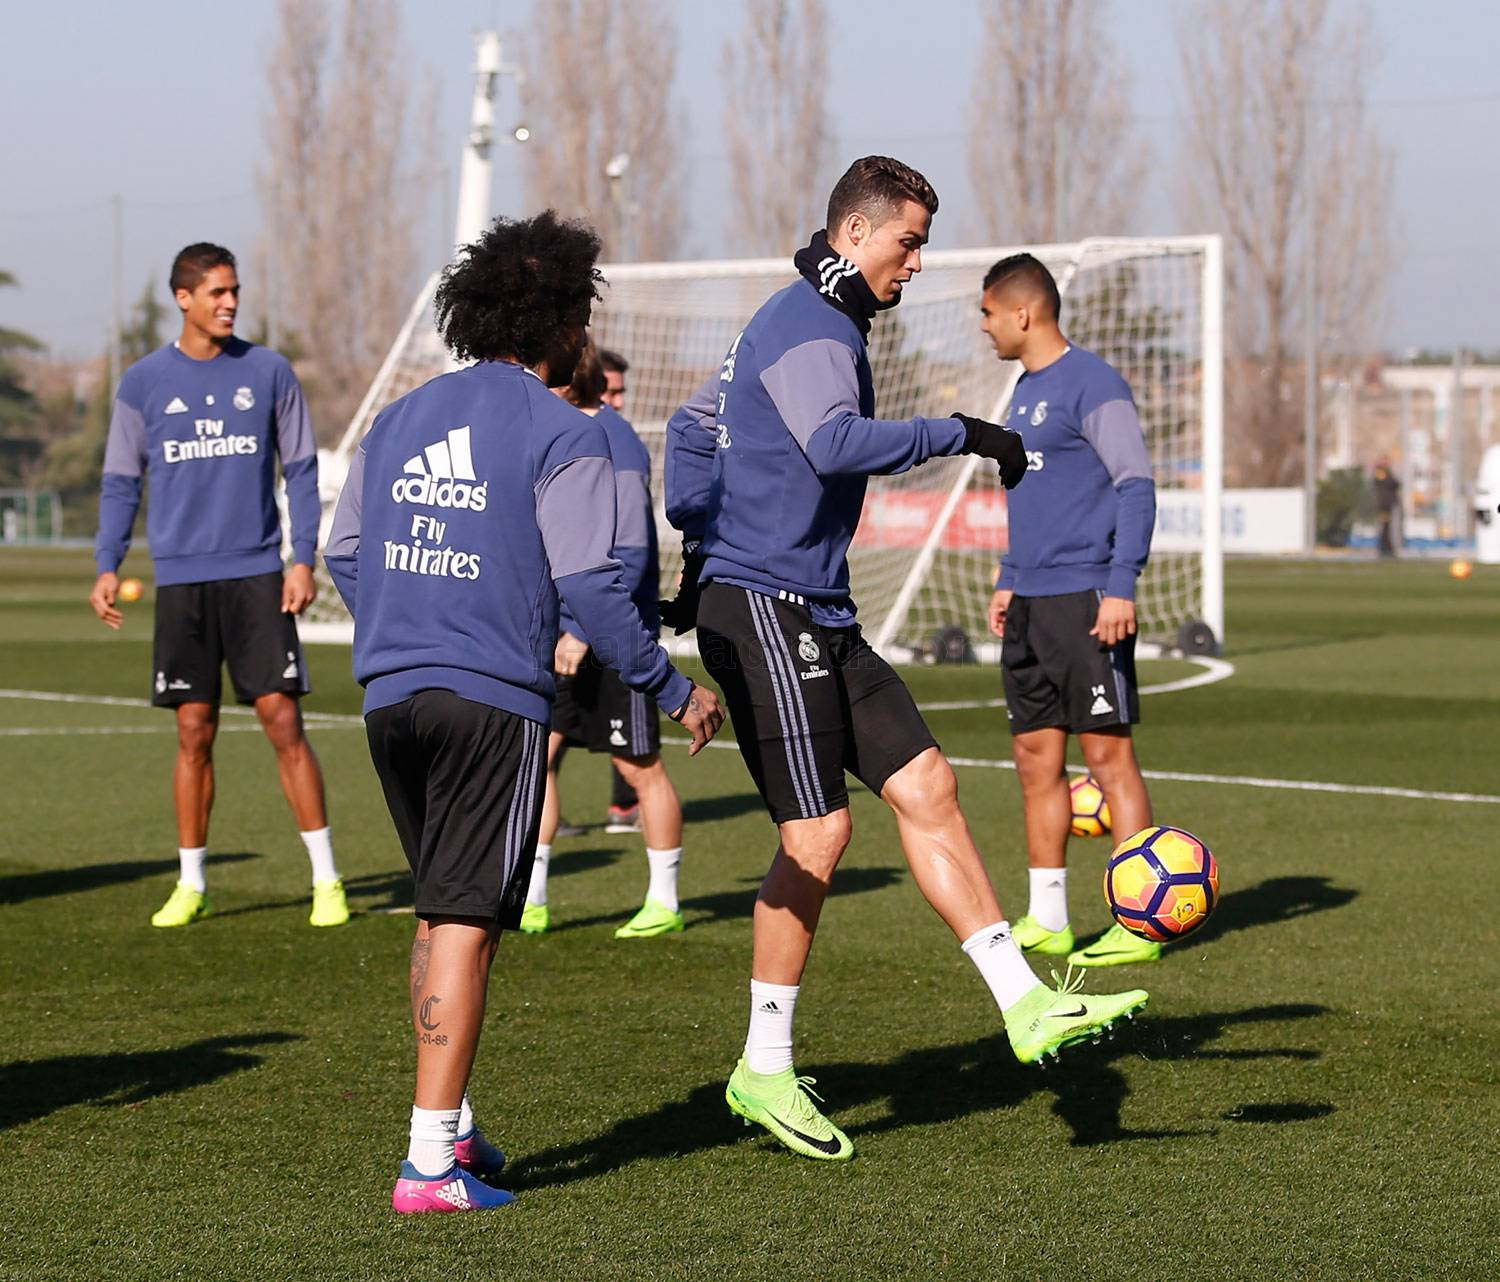 Real Madrid - Entrenamiento del Real Madrid - 17-02-2017